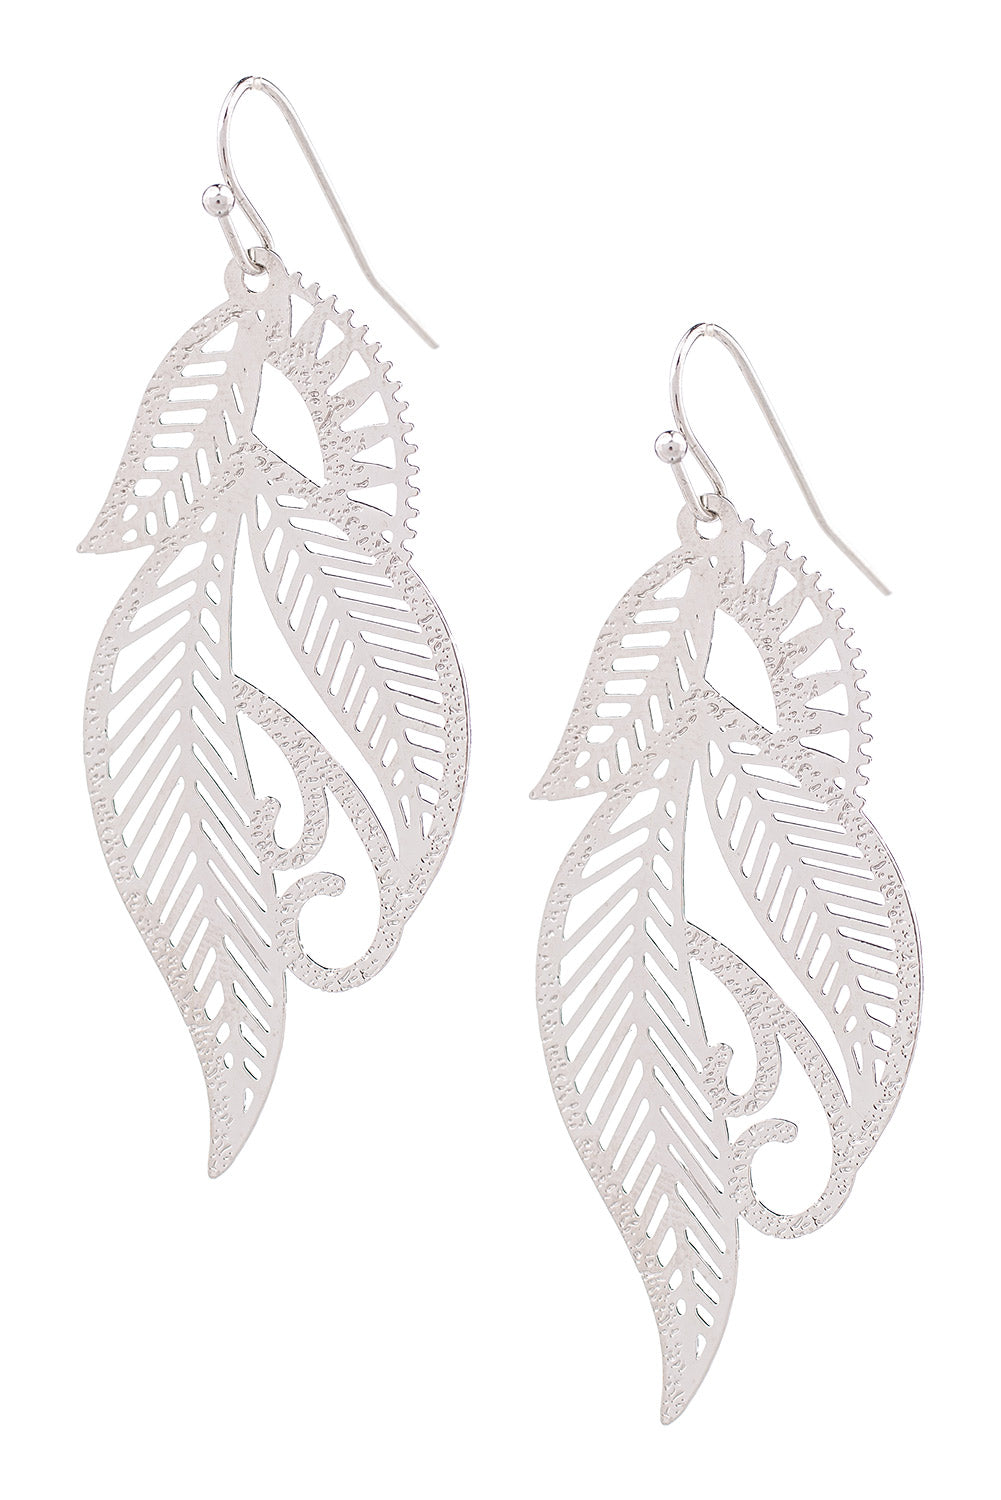 Type 2 Feathered Friend Earrings